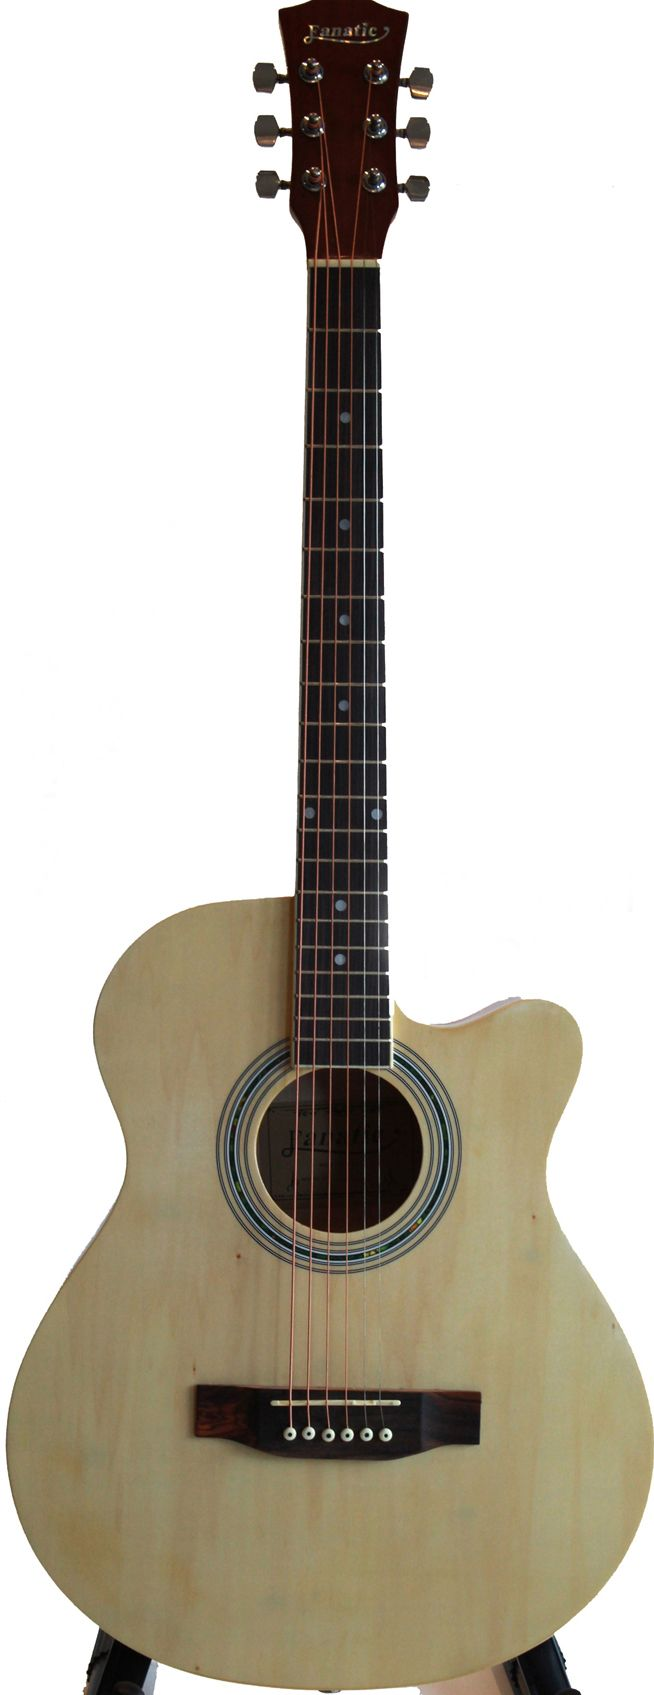 On sale ! Acoustic Guitar for Beginners 39 inch brand New online guitar store…